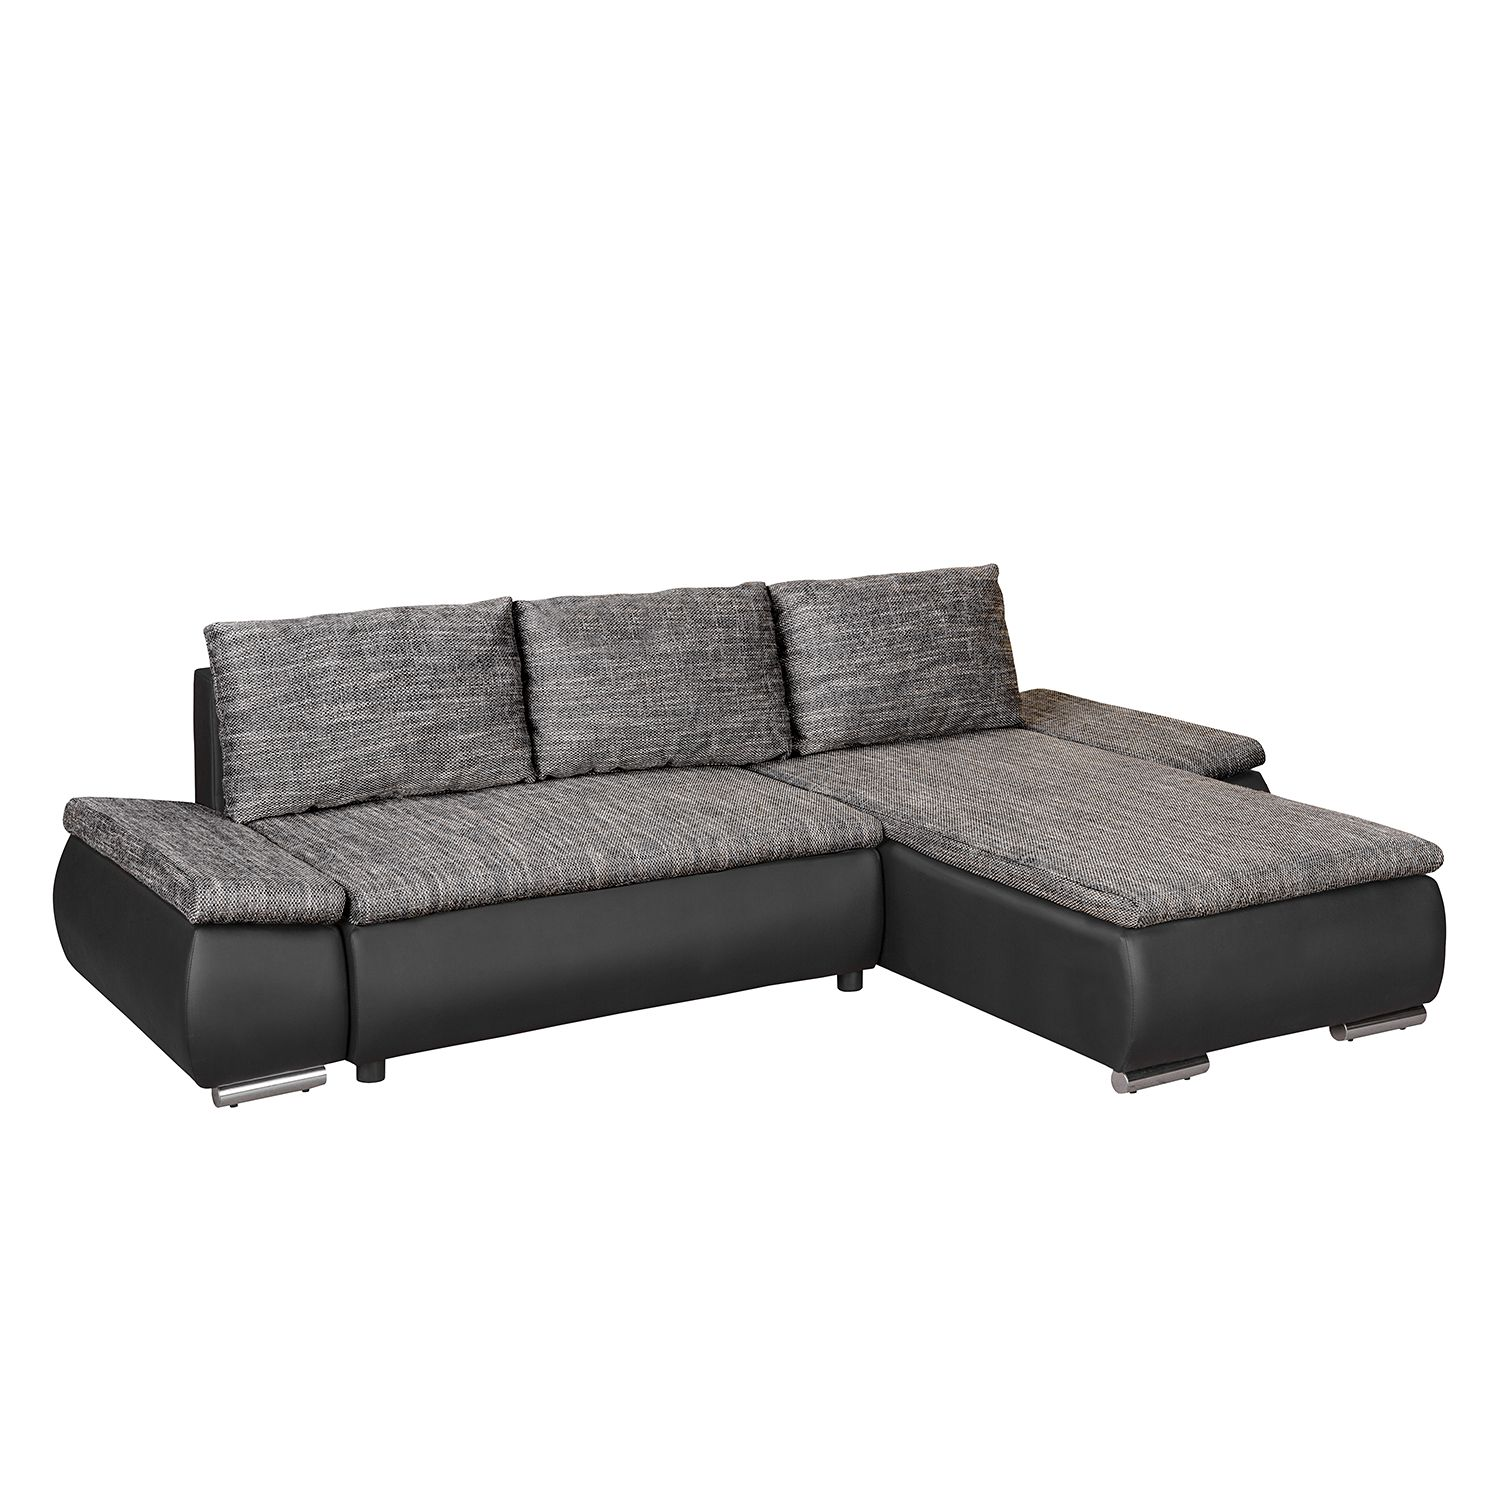 sofa mit ottomane hussen die neueste innovation der innenarchitektur und m bel. Black Bedroom Furniture Sets. Home Design Ideas